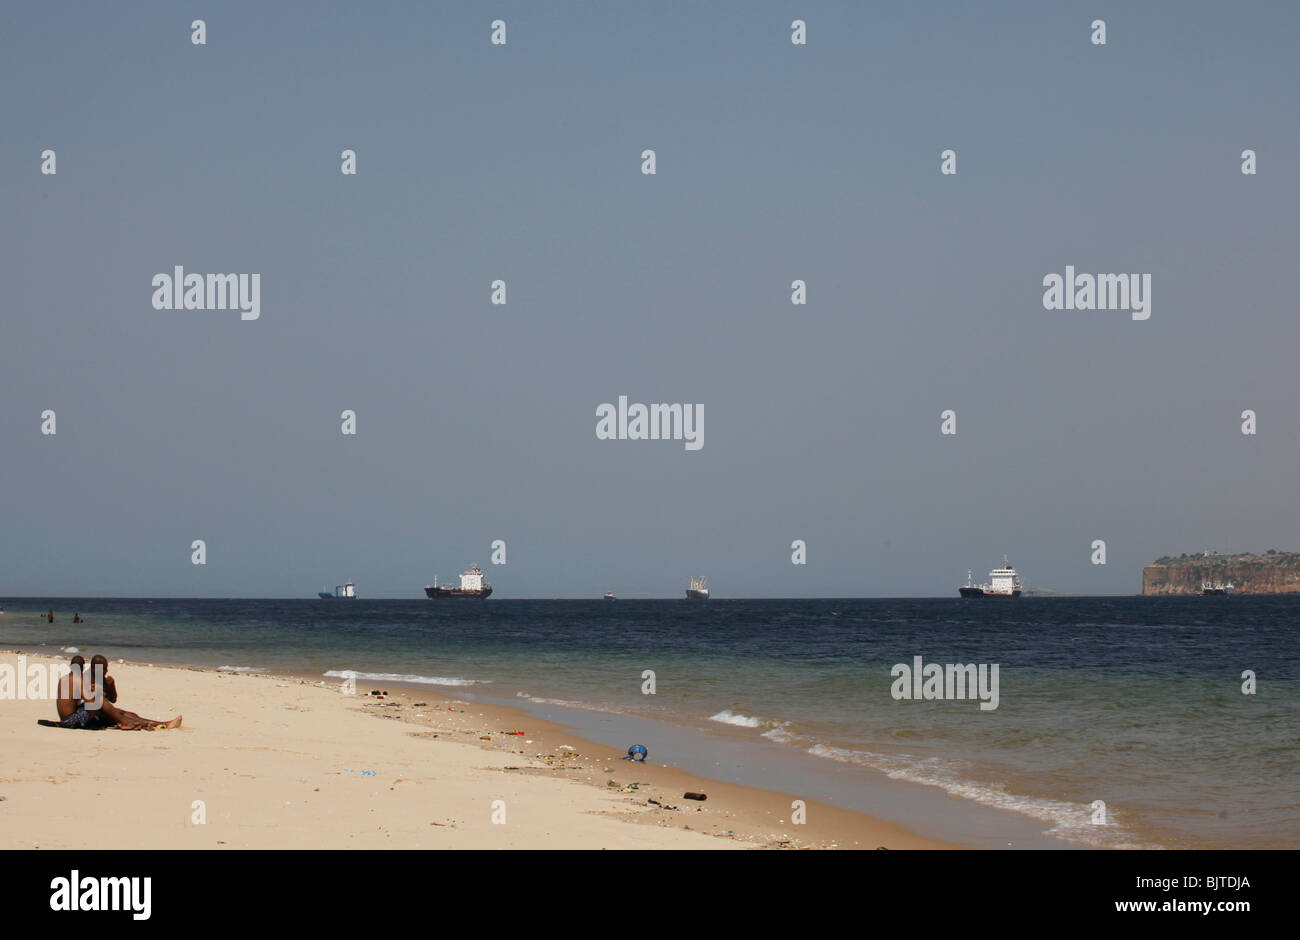 Ships and tankers waiting to dock at the port. As seen from the beach at the end of The Ilha. Luanda. Angola. Africa. - Stock Image